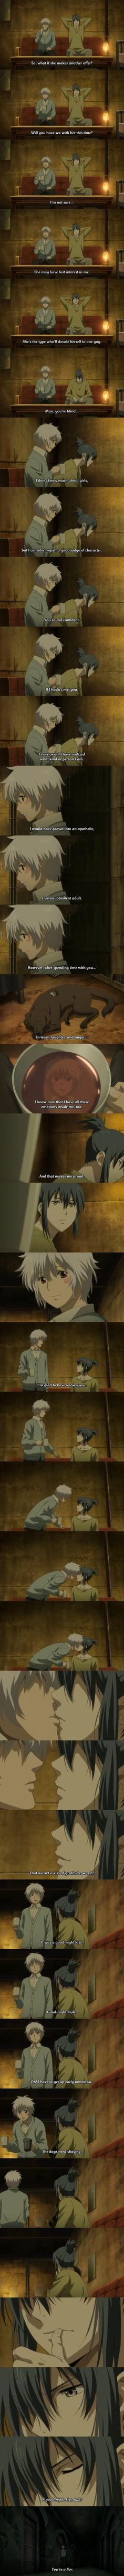 Shion and Nezumi // No.6